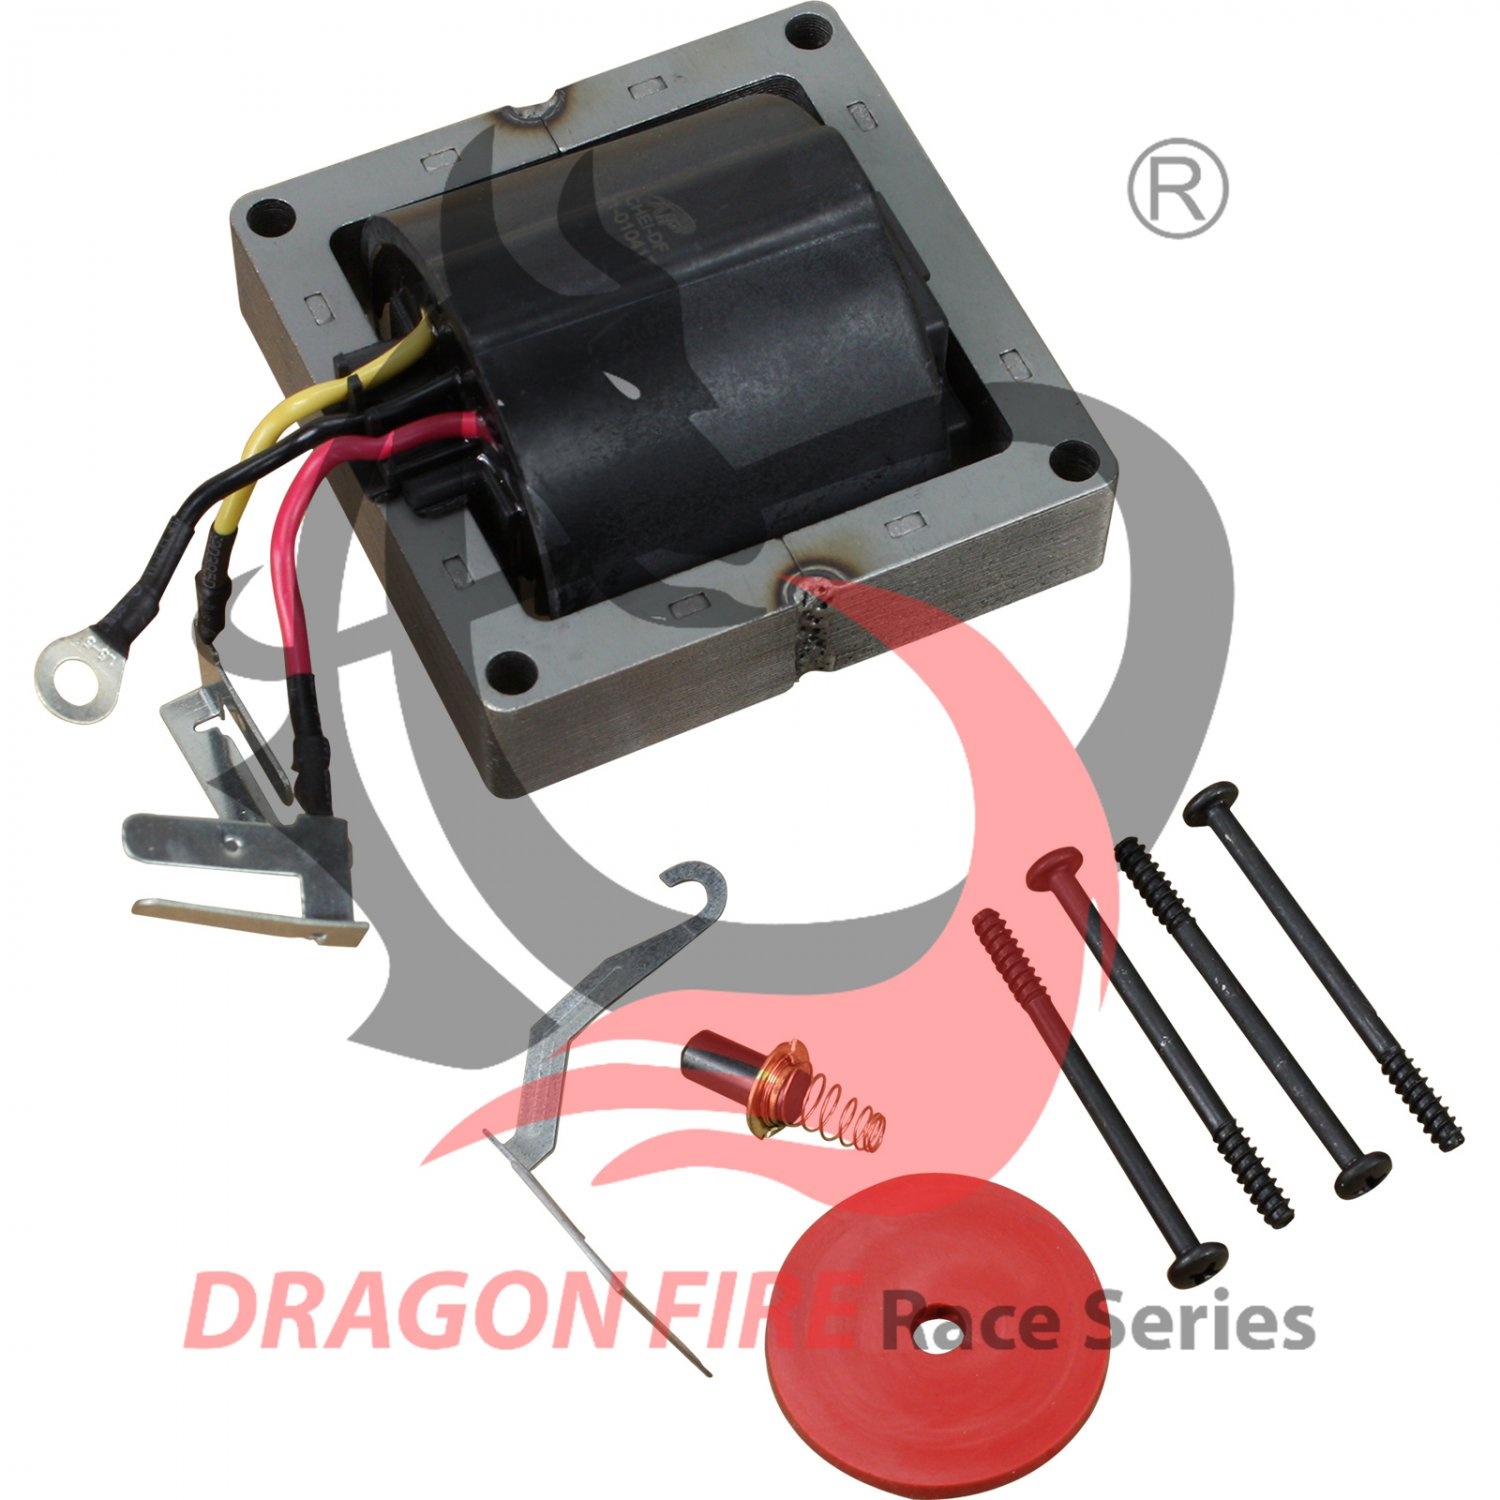 New High Performance Dragon Fire HEI Replacement Coil for ALL HEI Distributors